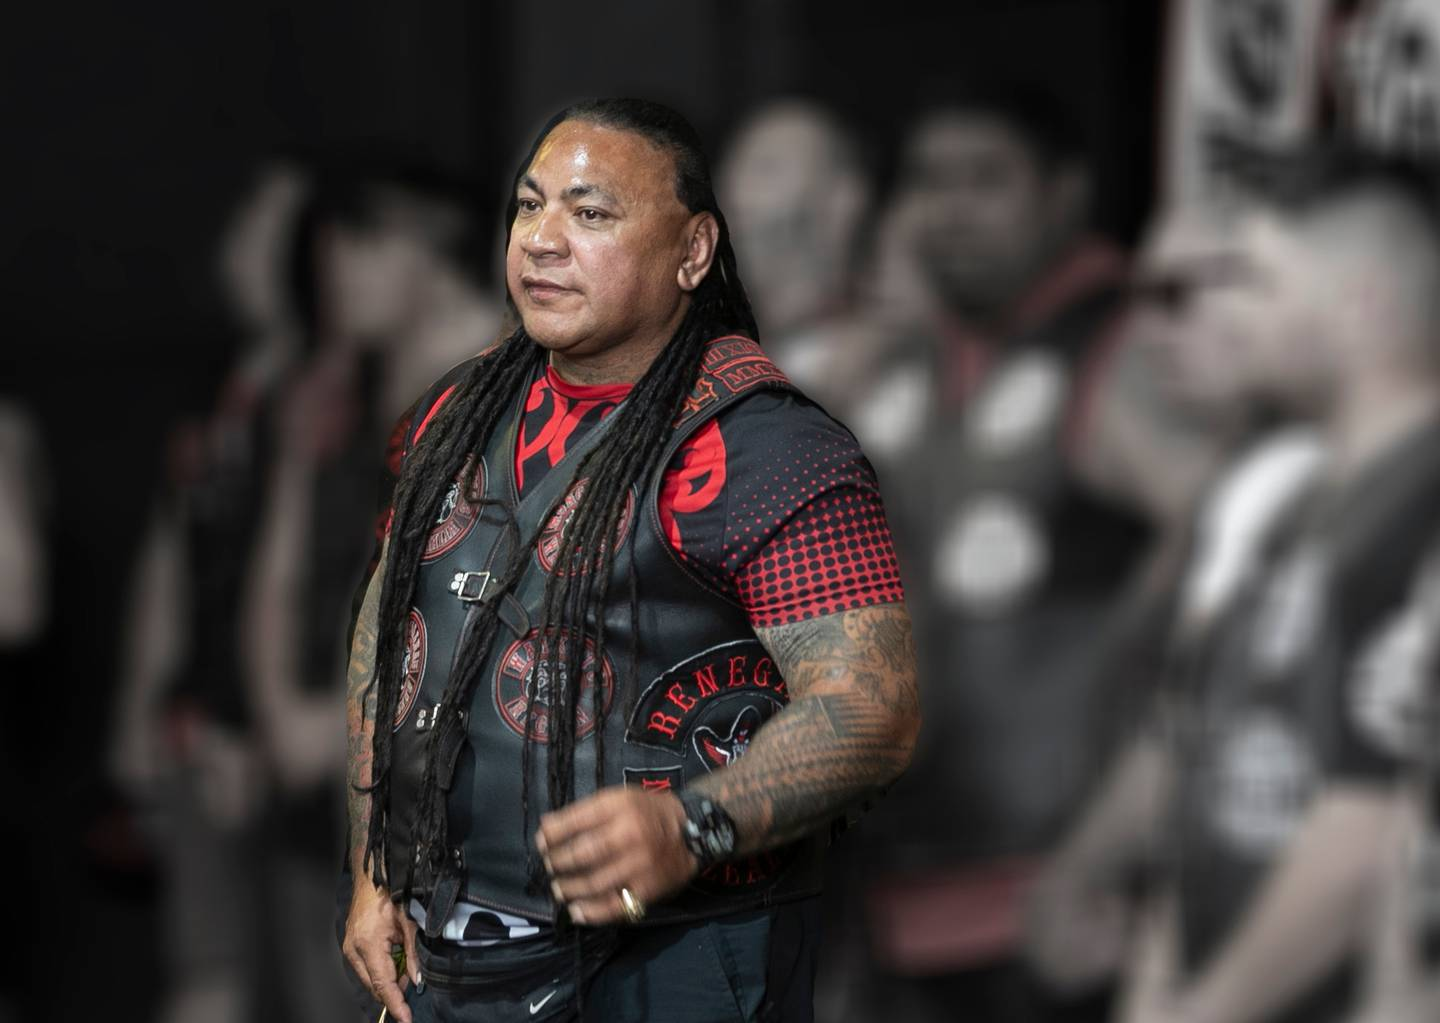 President of the Waikato Mongrel Mob Kingdom Sonny Fatupaito. He has an exemption to enter Auckland to help facilitate testing and contact tracing among members. Photo / File